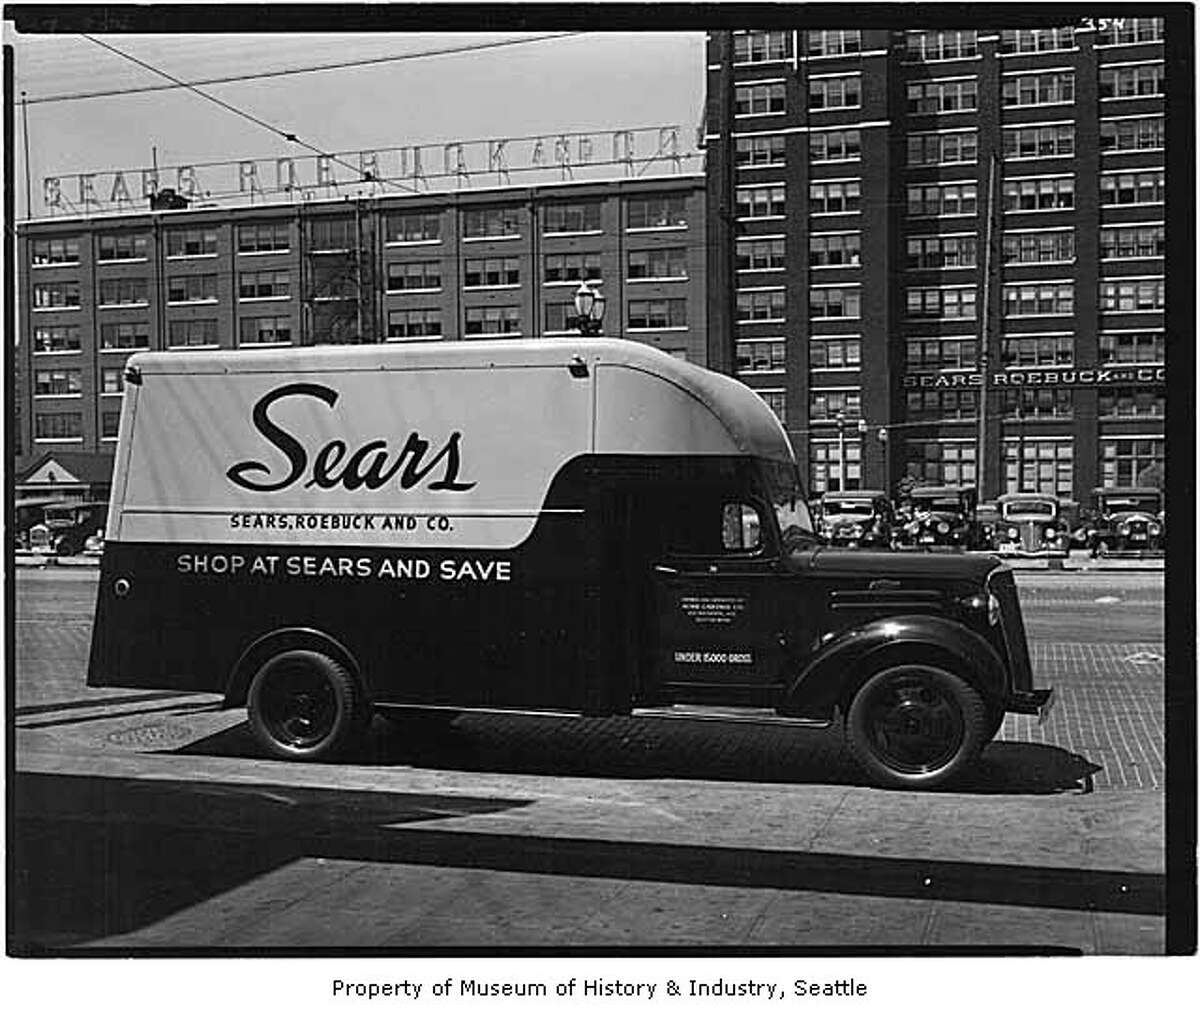 Records are fuzzy on when Sears, Roebuck & Co. came to Seattle. An old P-I story says Sears opened in 1925, while MOHAI archives say the company was here in 1910. It's possible Sears first opened a warehouse and then a retail outlet. Whatever the case, the store that once sold chickens and DIY home kits - along with underwear and vacuum cleaners - has been in Seattle for roughly a century. It closed in June of 2014. (Photo: 1937, copyright MOHAI, Webster & Stevens, 1983.10.13750.3).